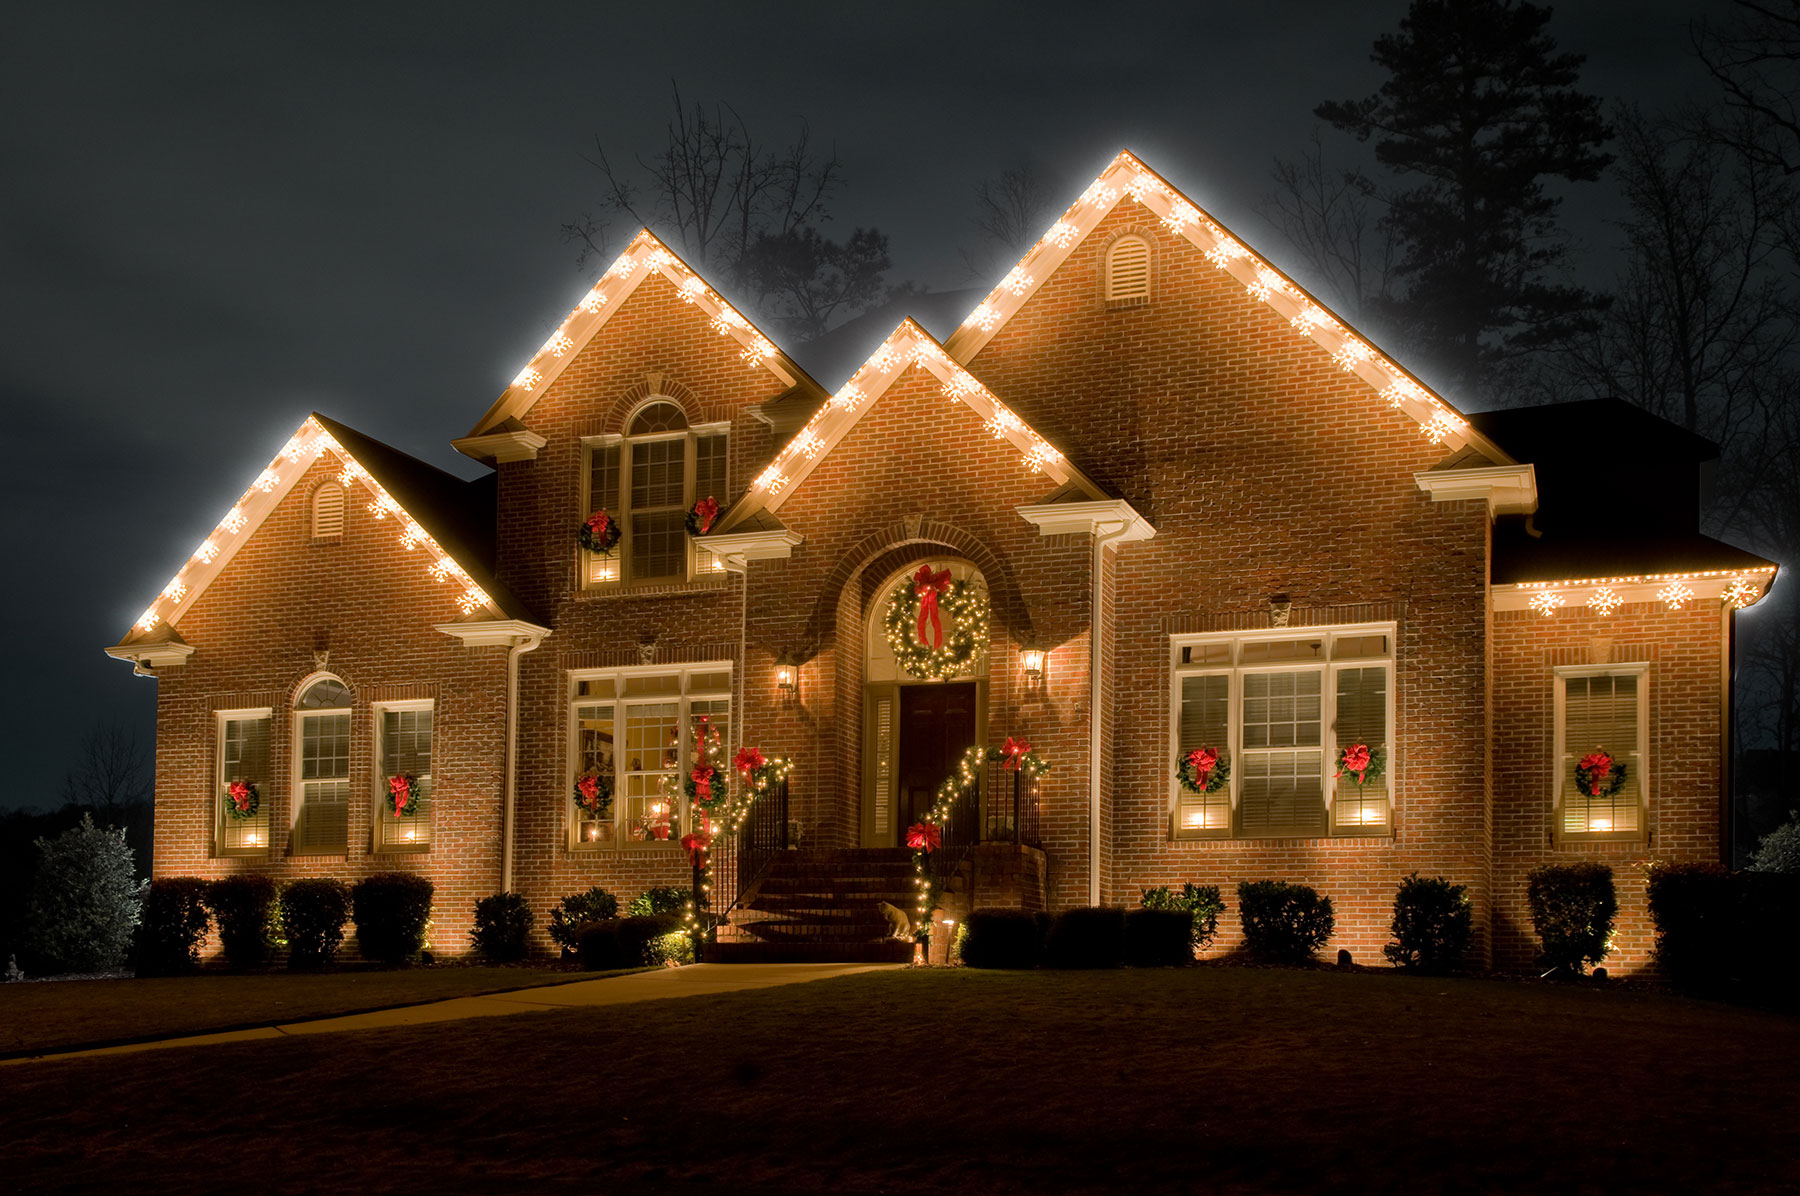 up house landscape options light with in garden patio chattanooga outdoor lights lake lighting home houses